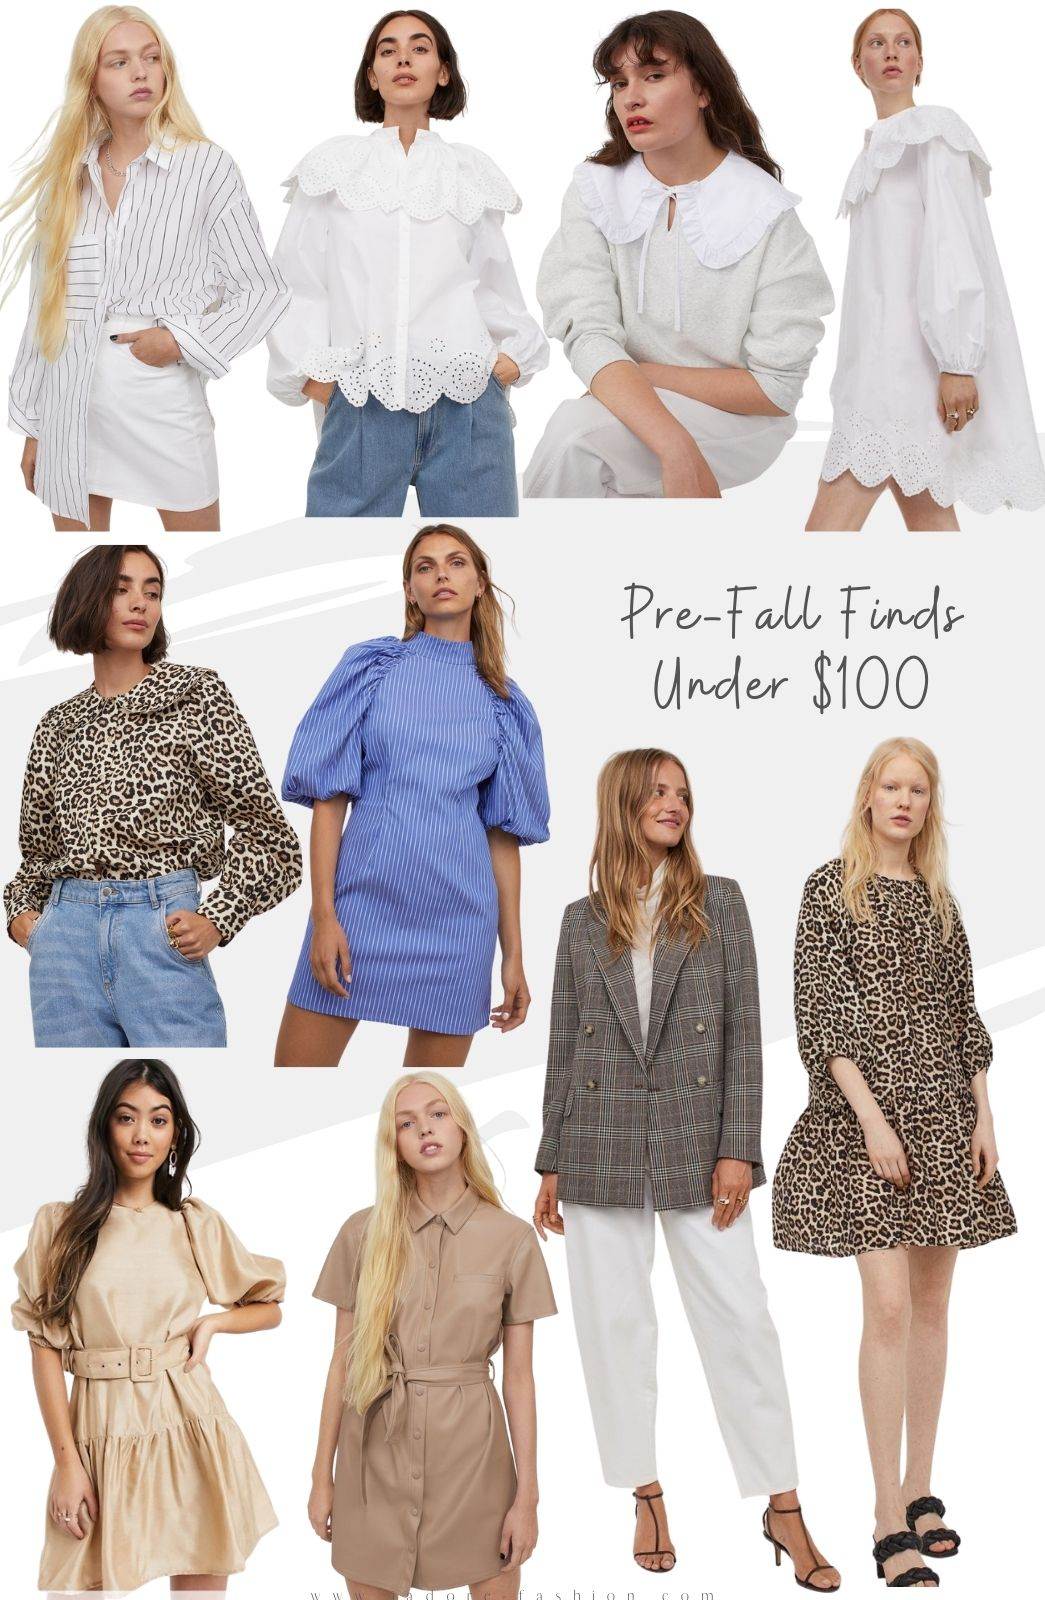 stella-adewunmi-of-jadore-fashion-blog-shares-pre-fall-favorites-under-100-weekend-finds-and-deals